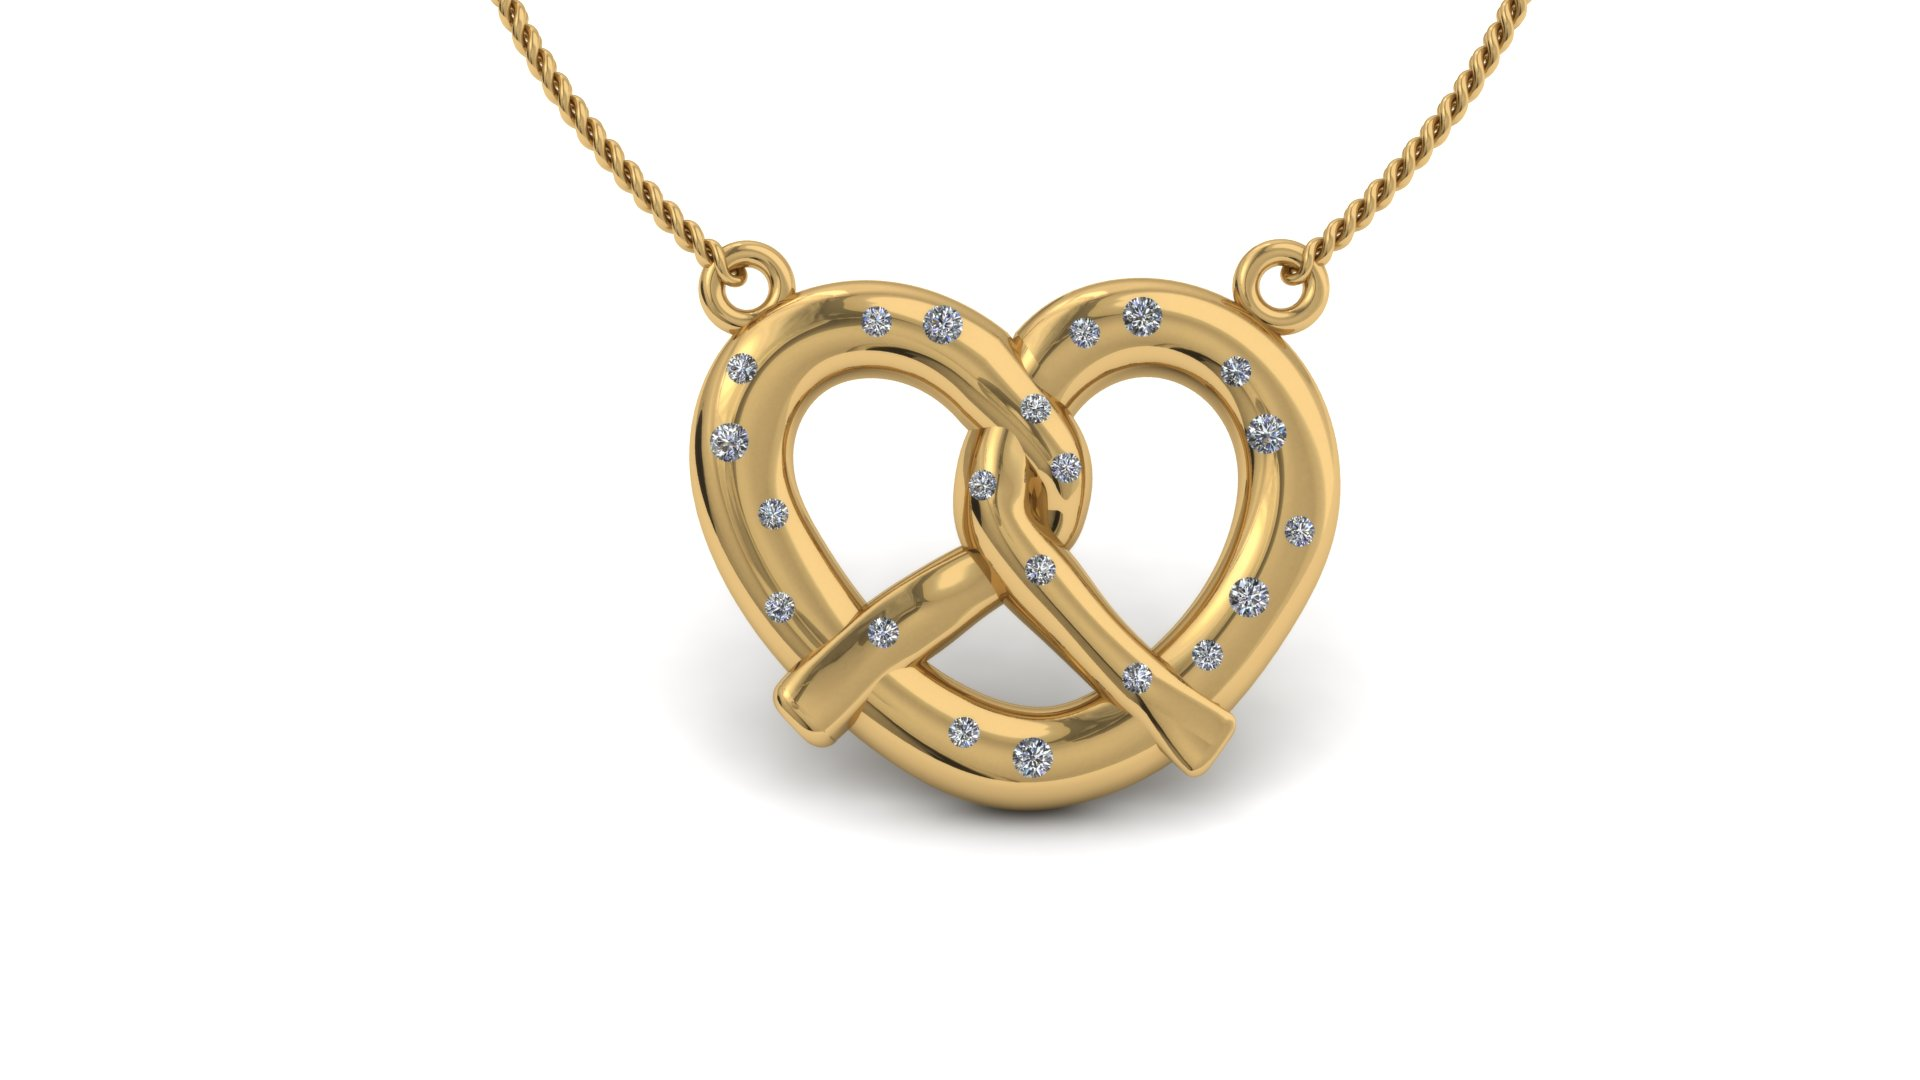 Necklace Design Gallery Goldsmiths Of Wyomissing Pa